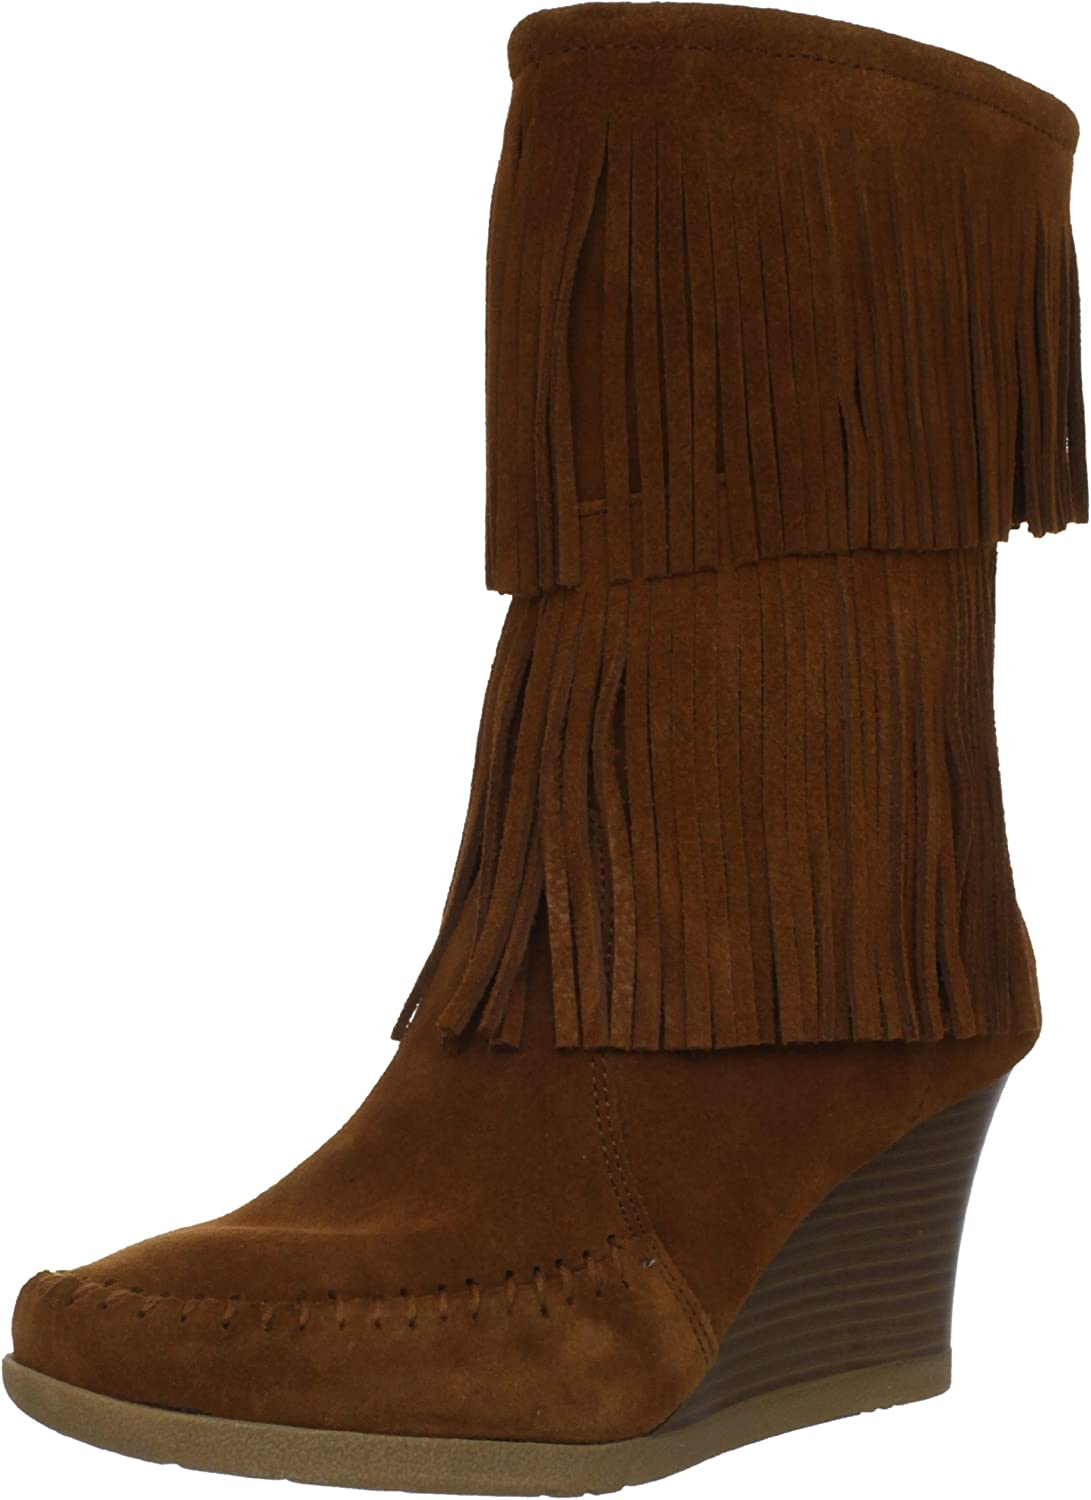 Damen Calf Hi Double Fringe Wedge Stiefel Fashion Stiefel